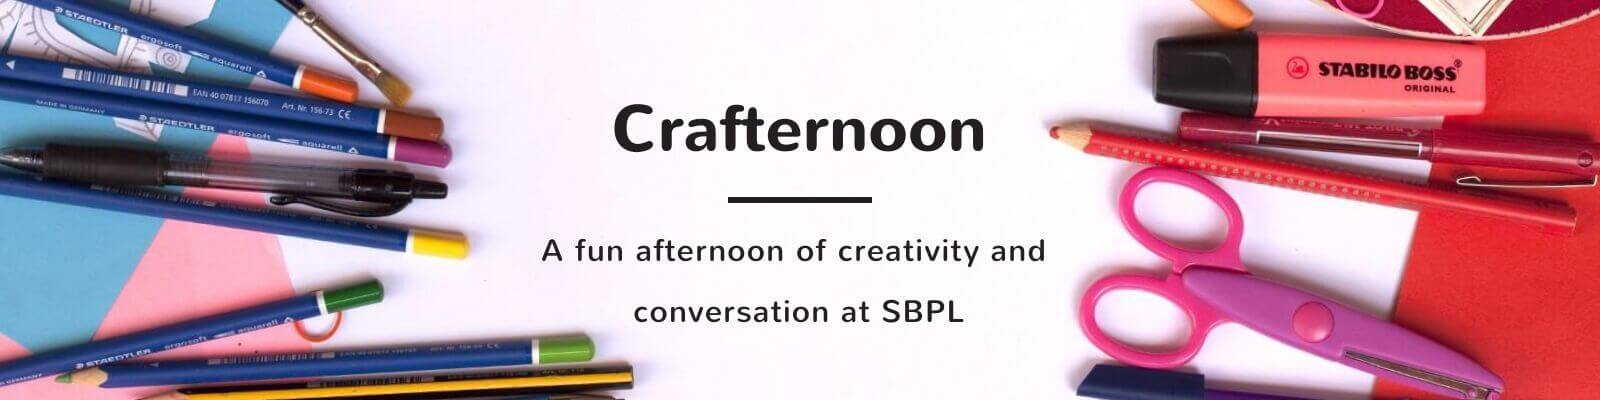 Stop by for our weekly Crafternoon event at South Brunswick Library